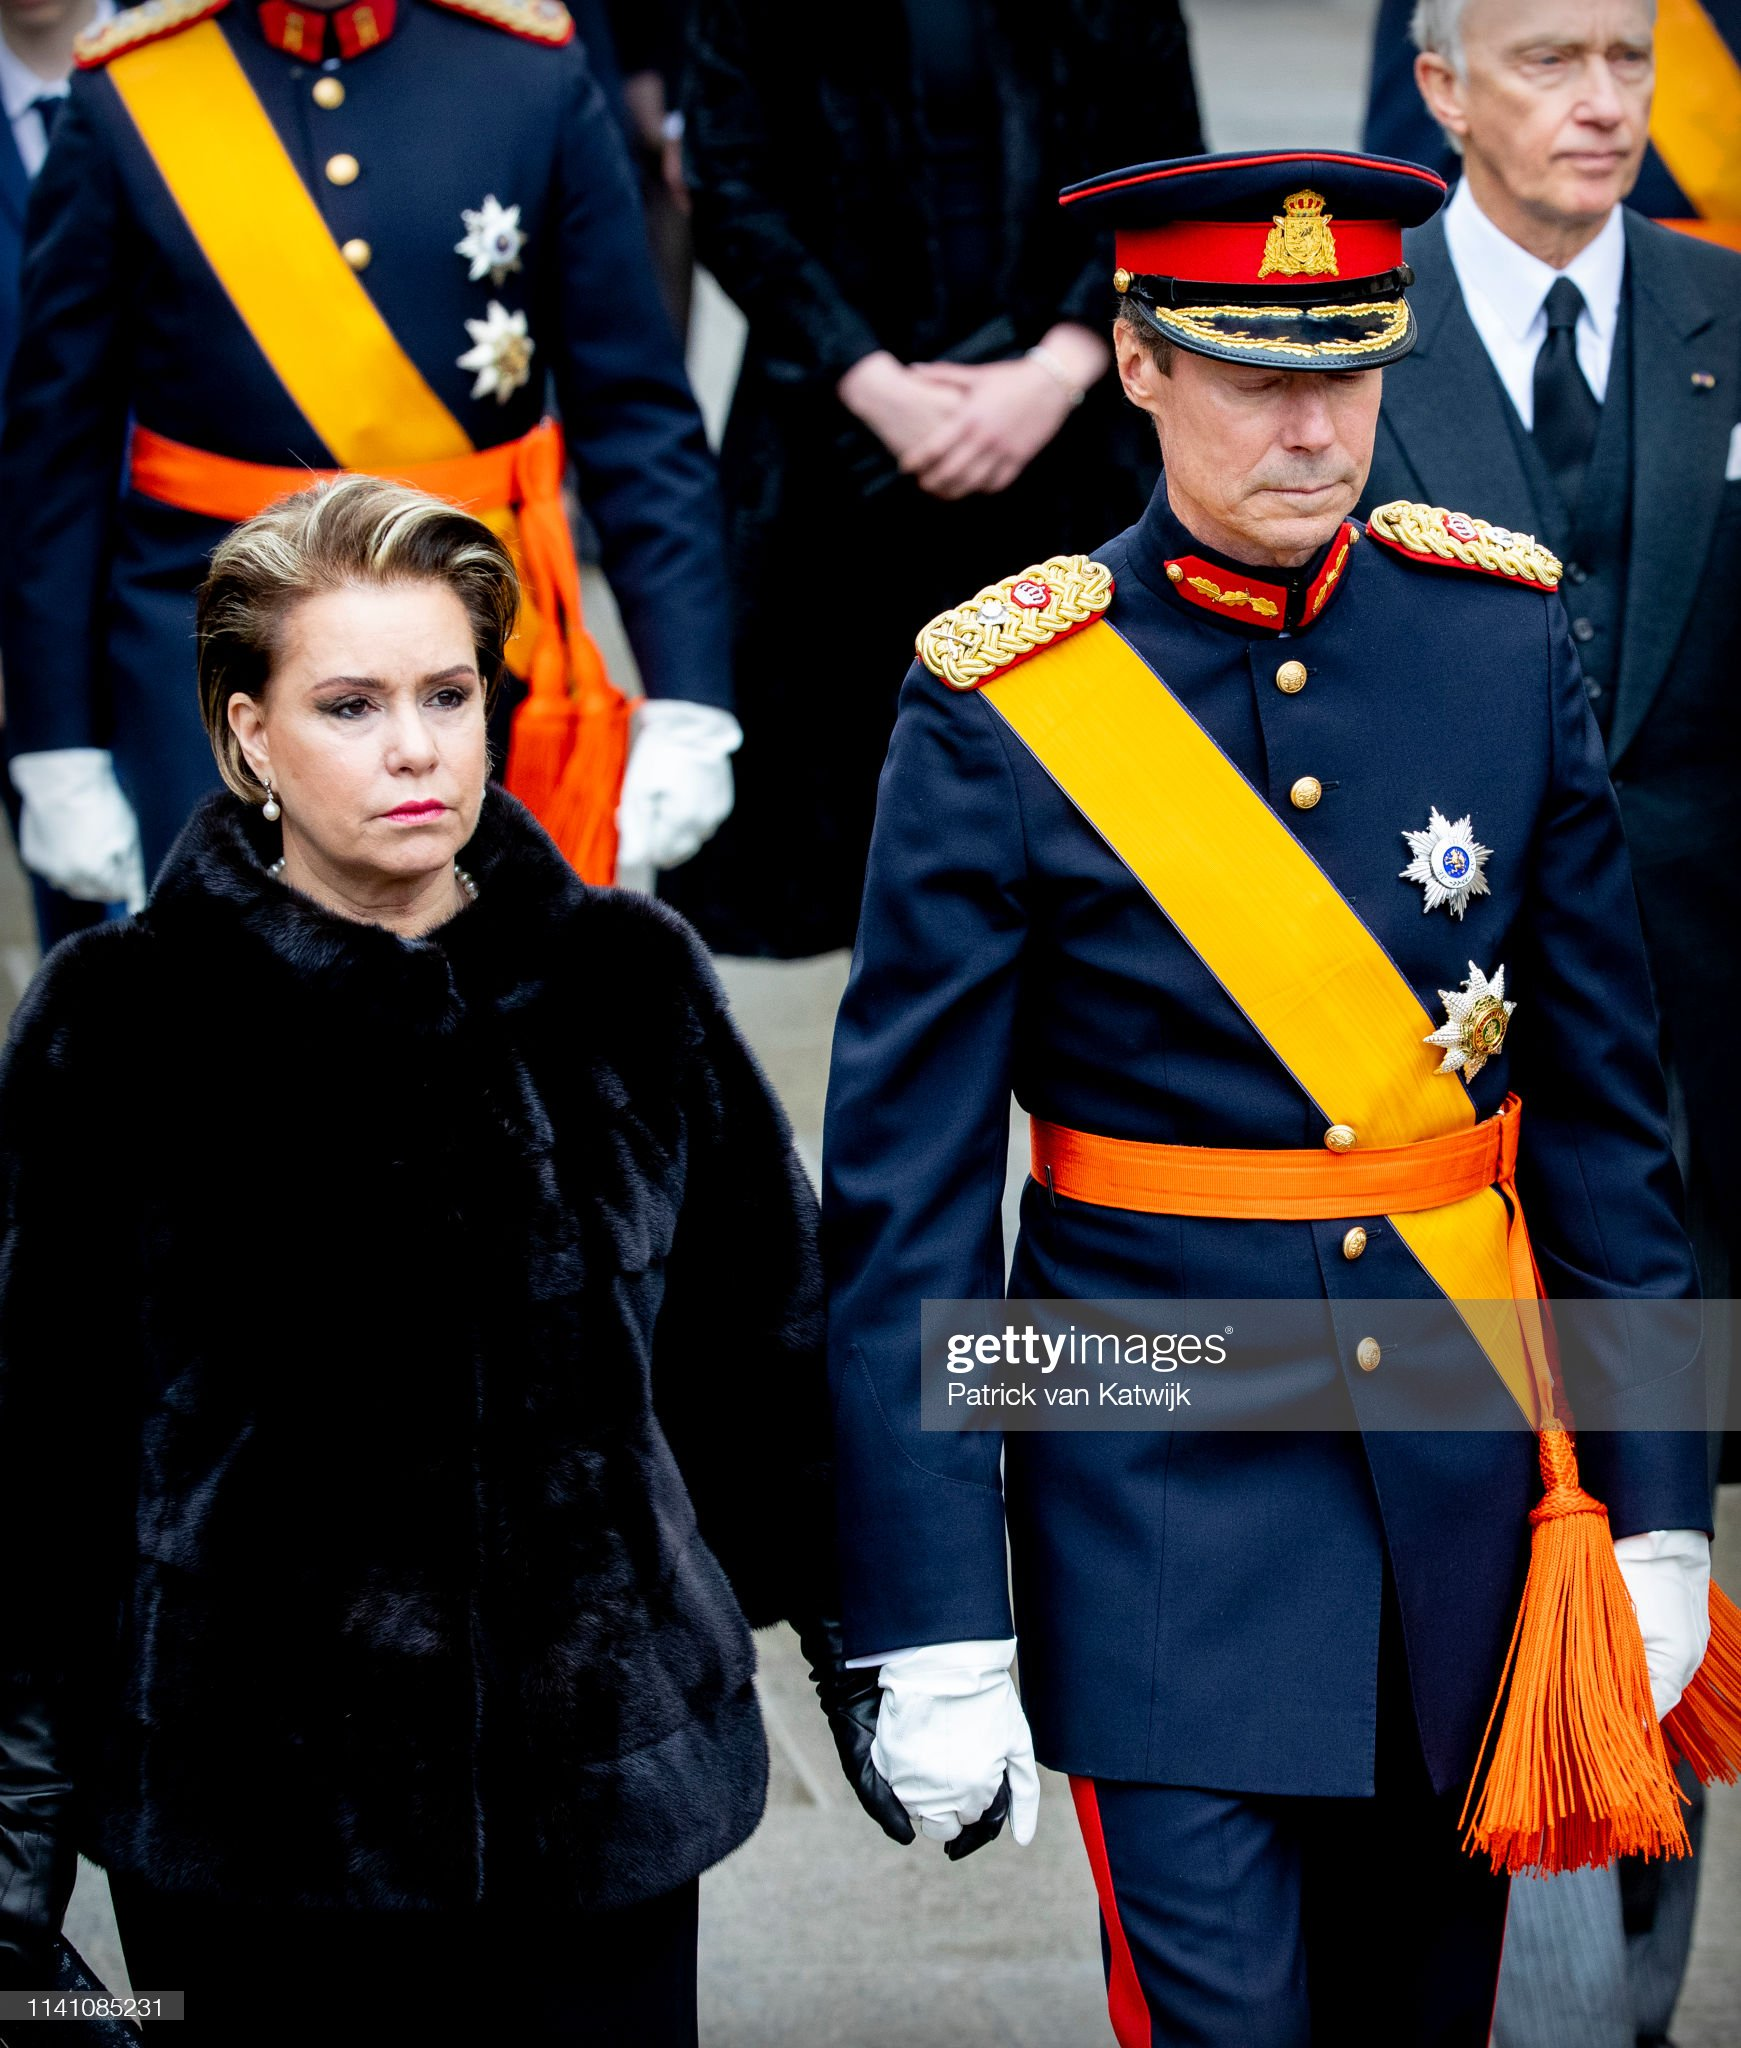 Похороны Великого Герцога Жана https://media.gettyimages.com/photos/grand-duke-henri-of-luxembourg-and-grand-duchess-maria-teresa-of-picture-id1141085231?s=2048x2048